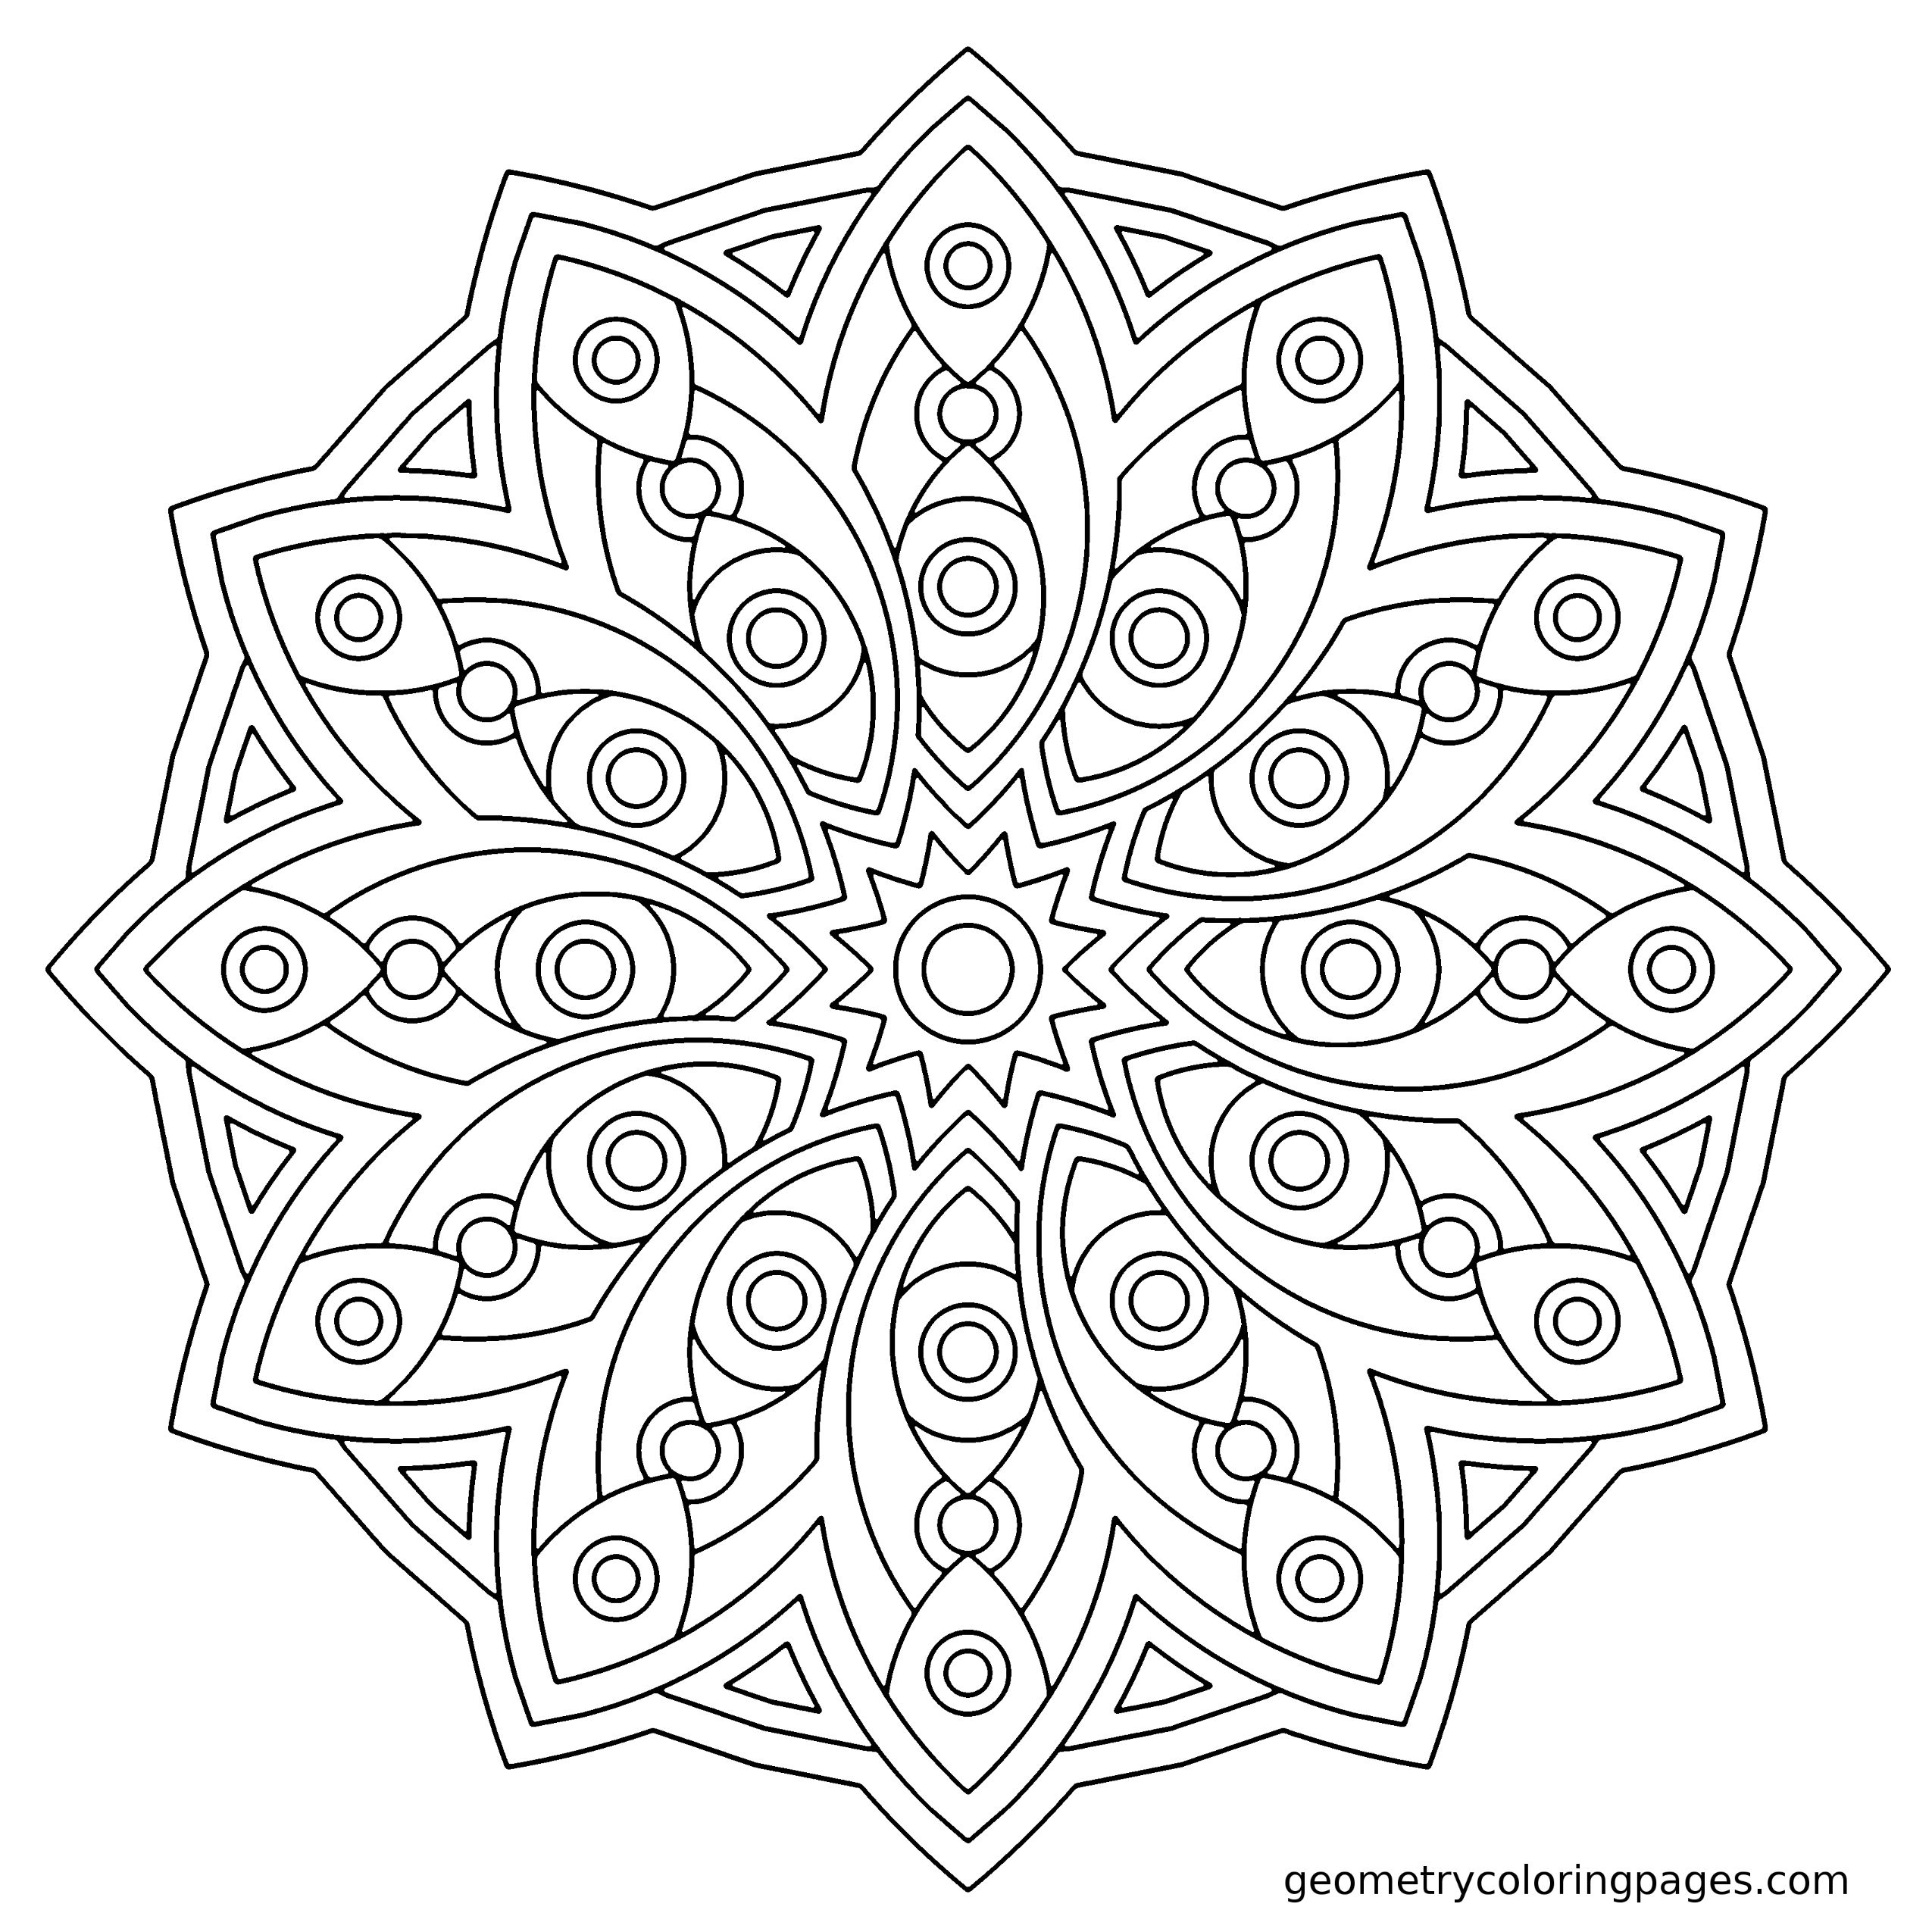 2550x2550 Awesome The Most Awesome Images On The Internet Free Coloring